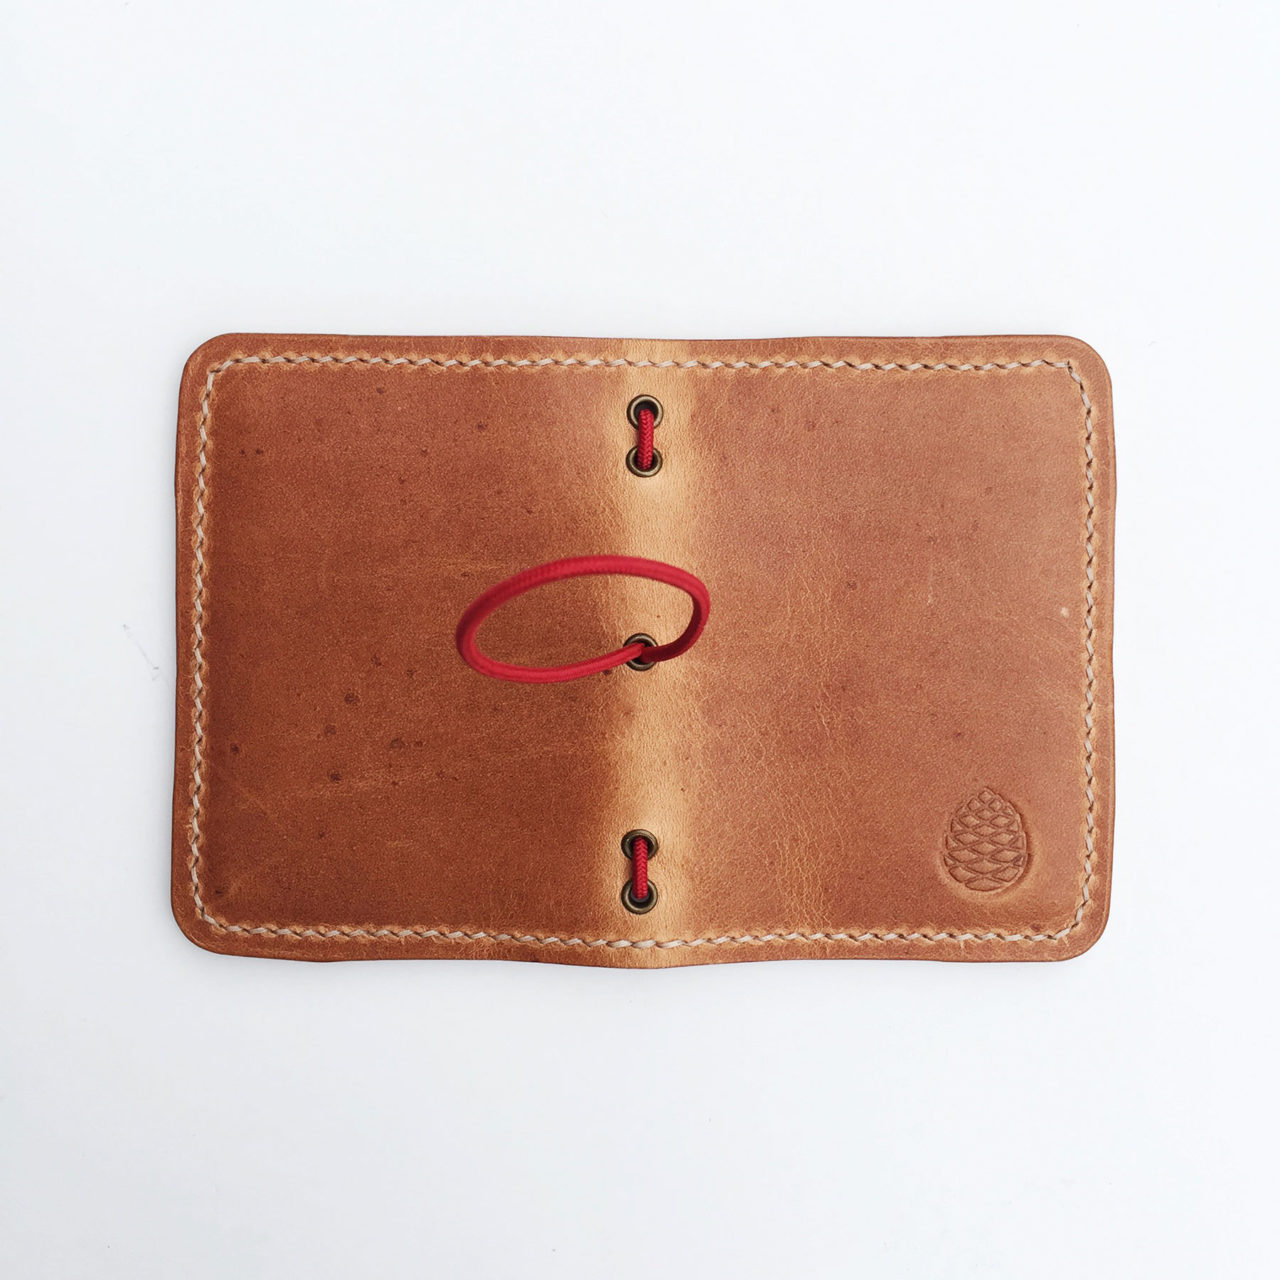 The-Level-Collective-leather-wallet-flat-out-1280x1280.jpg